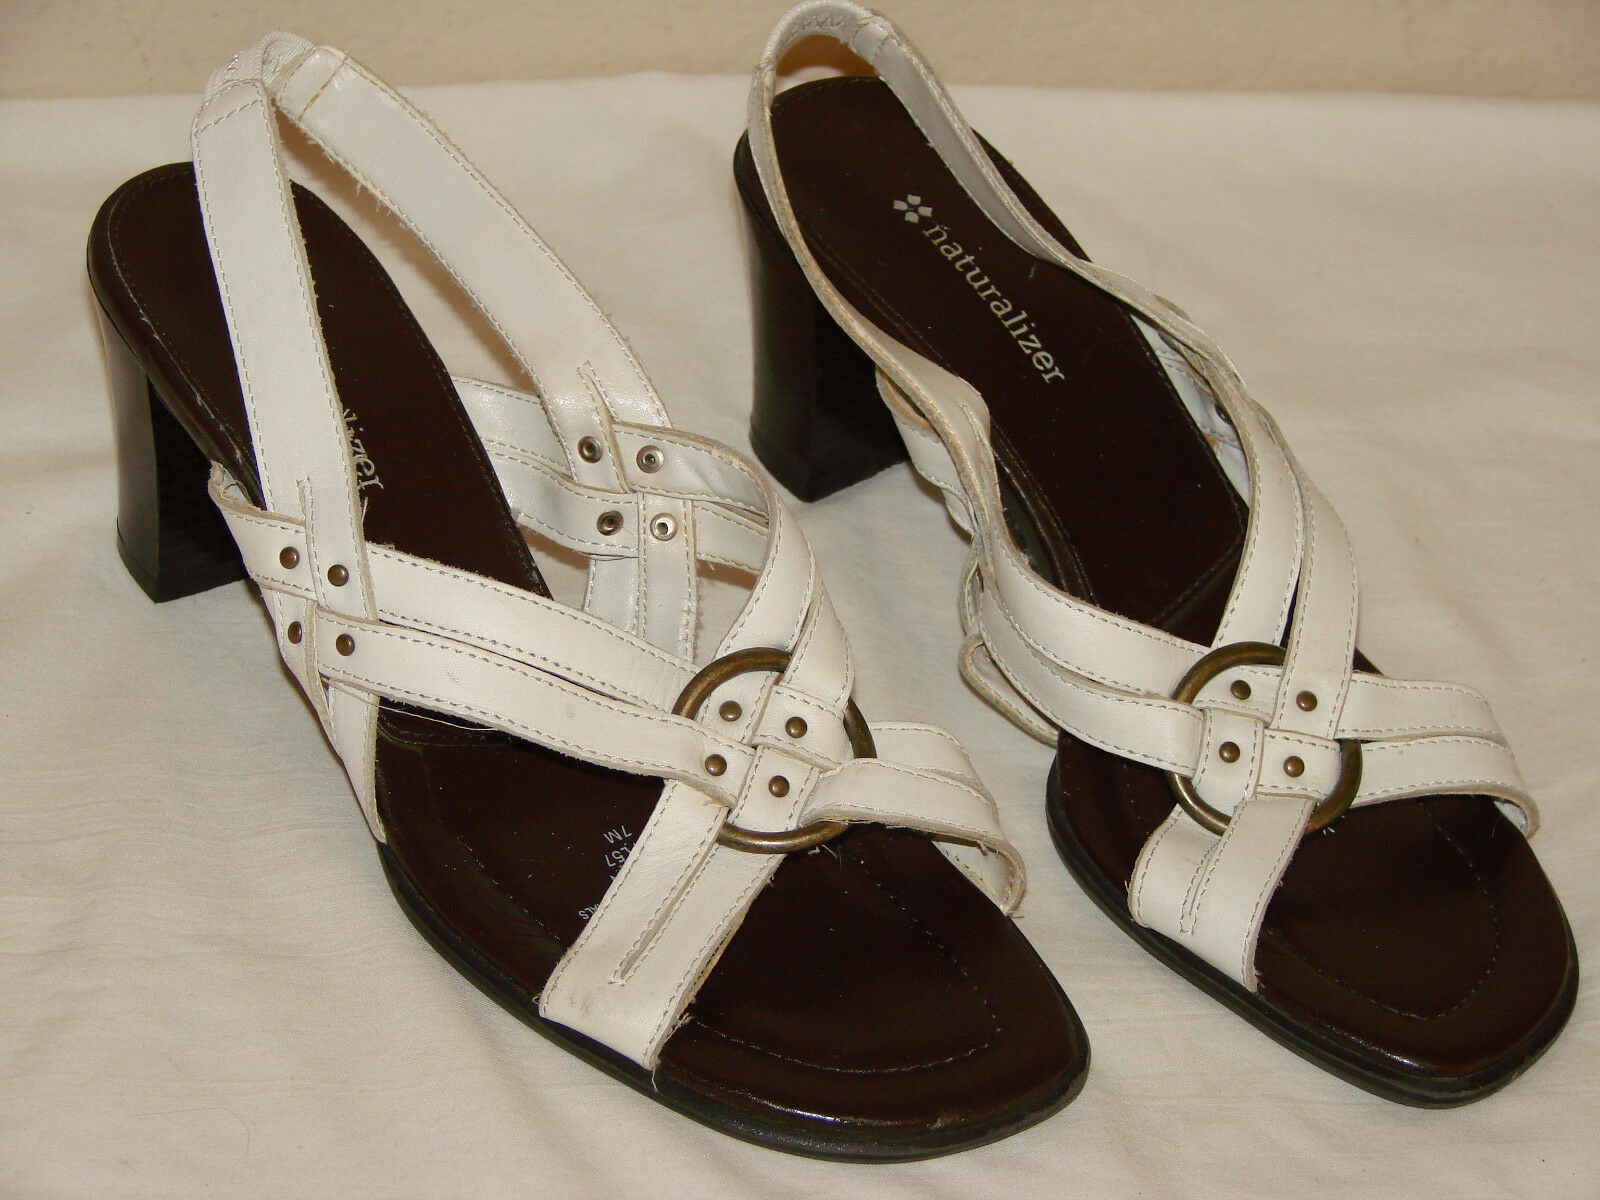 Naturalizer Suite N Womens White Leather Slingback Heel Sandal Shoe - Size 7M